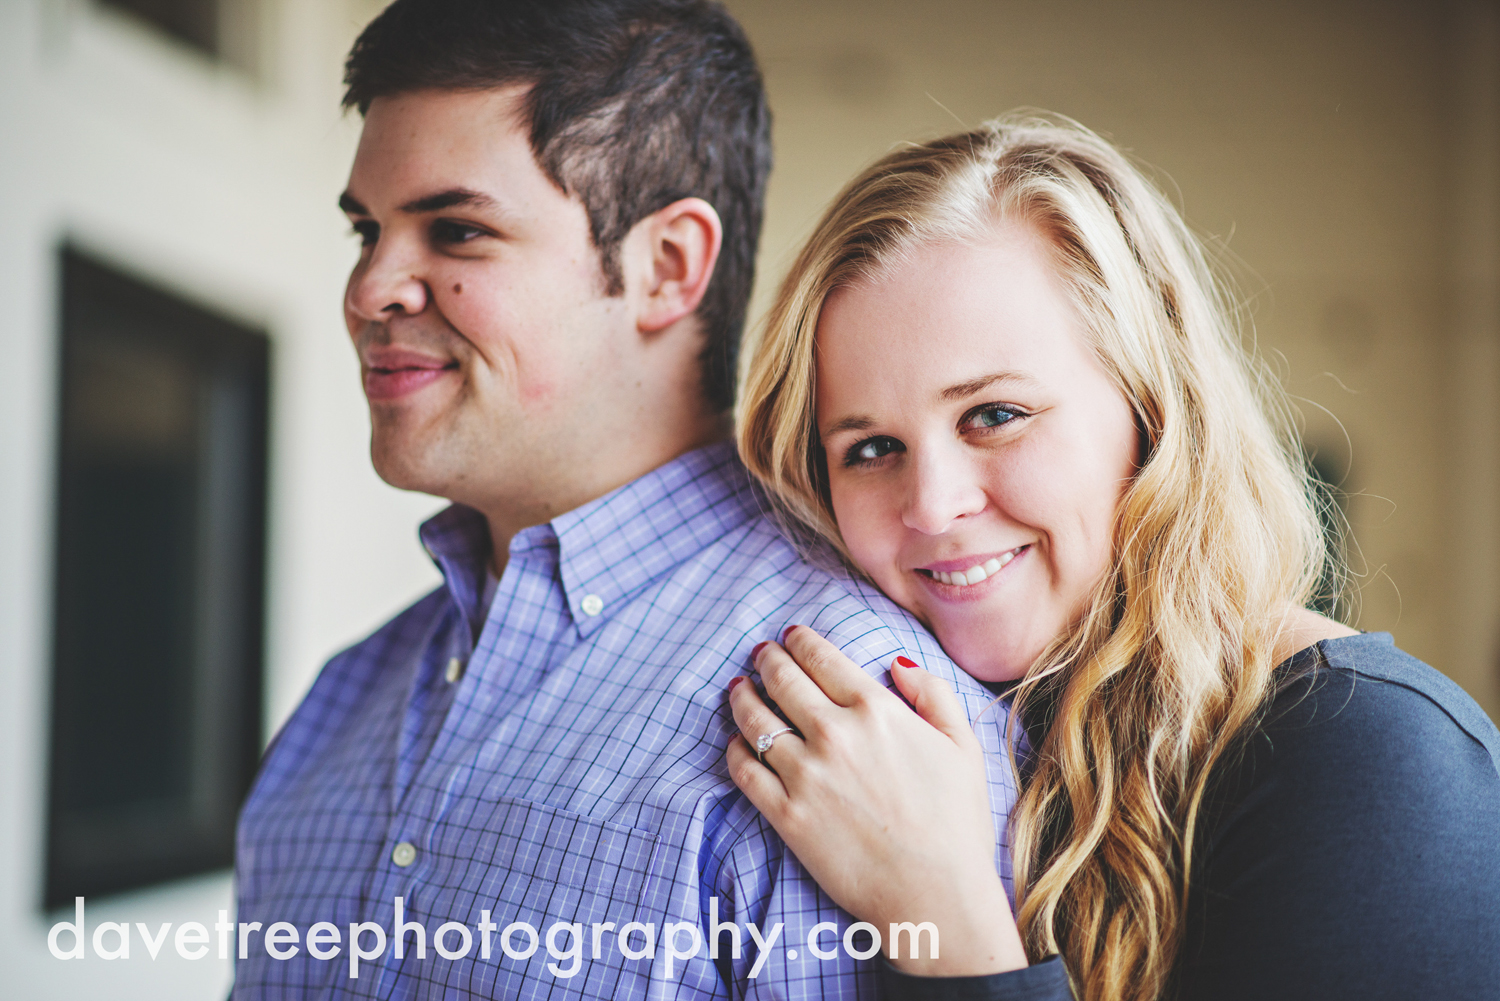 kalamazoo_engagement_photographer_313.jpg